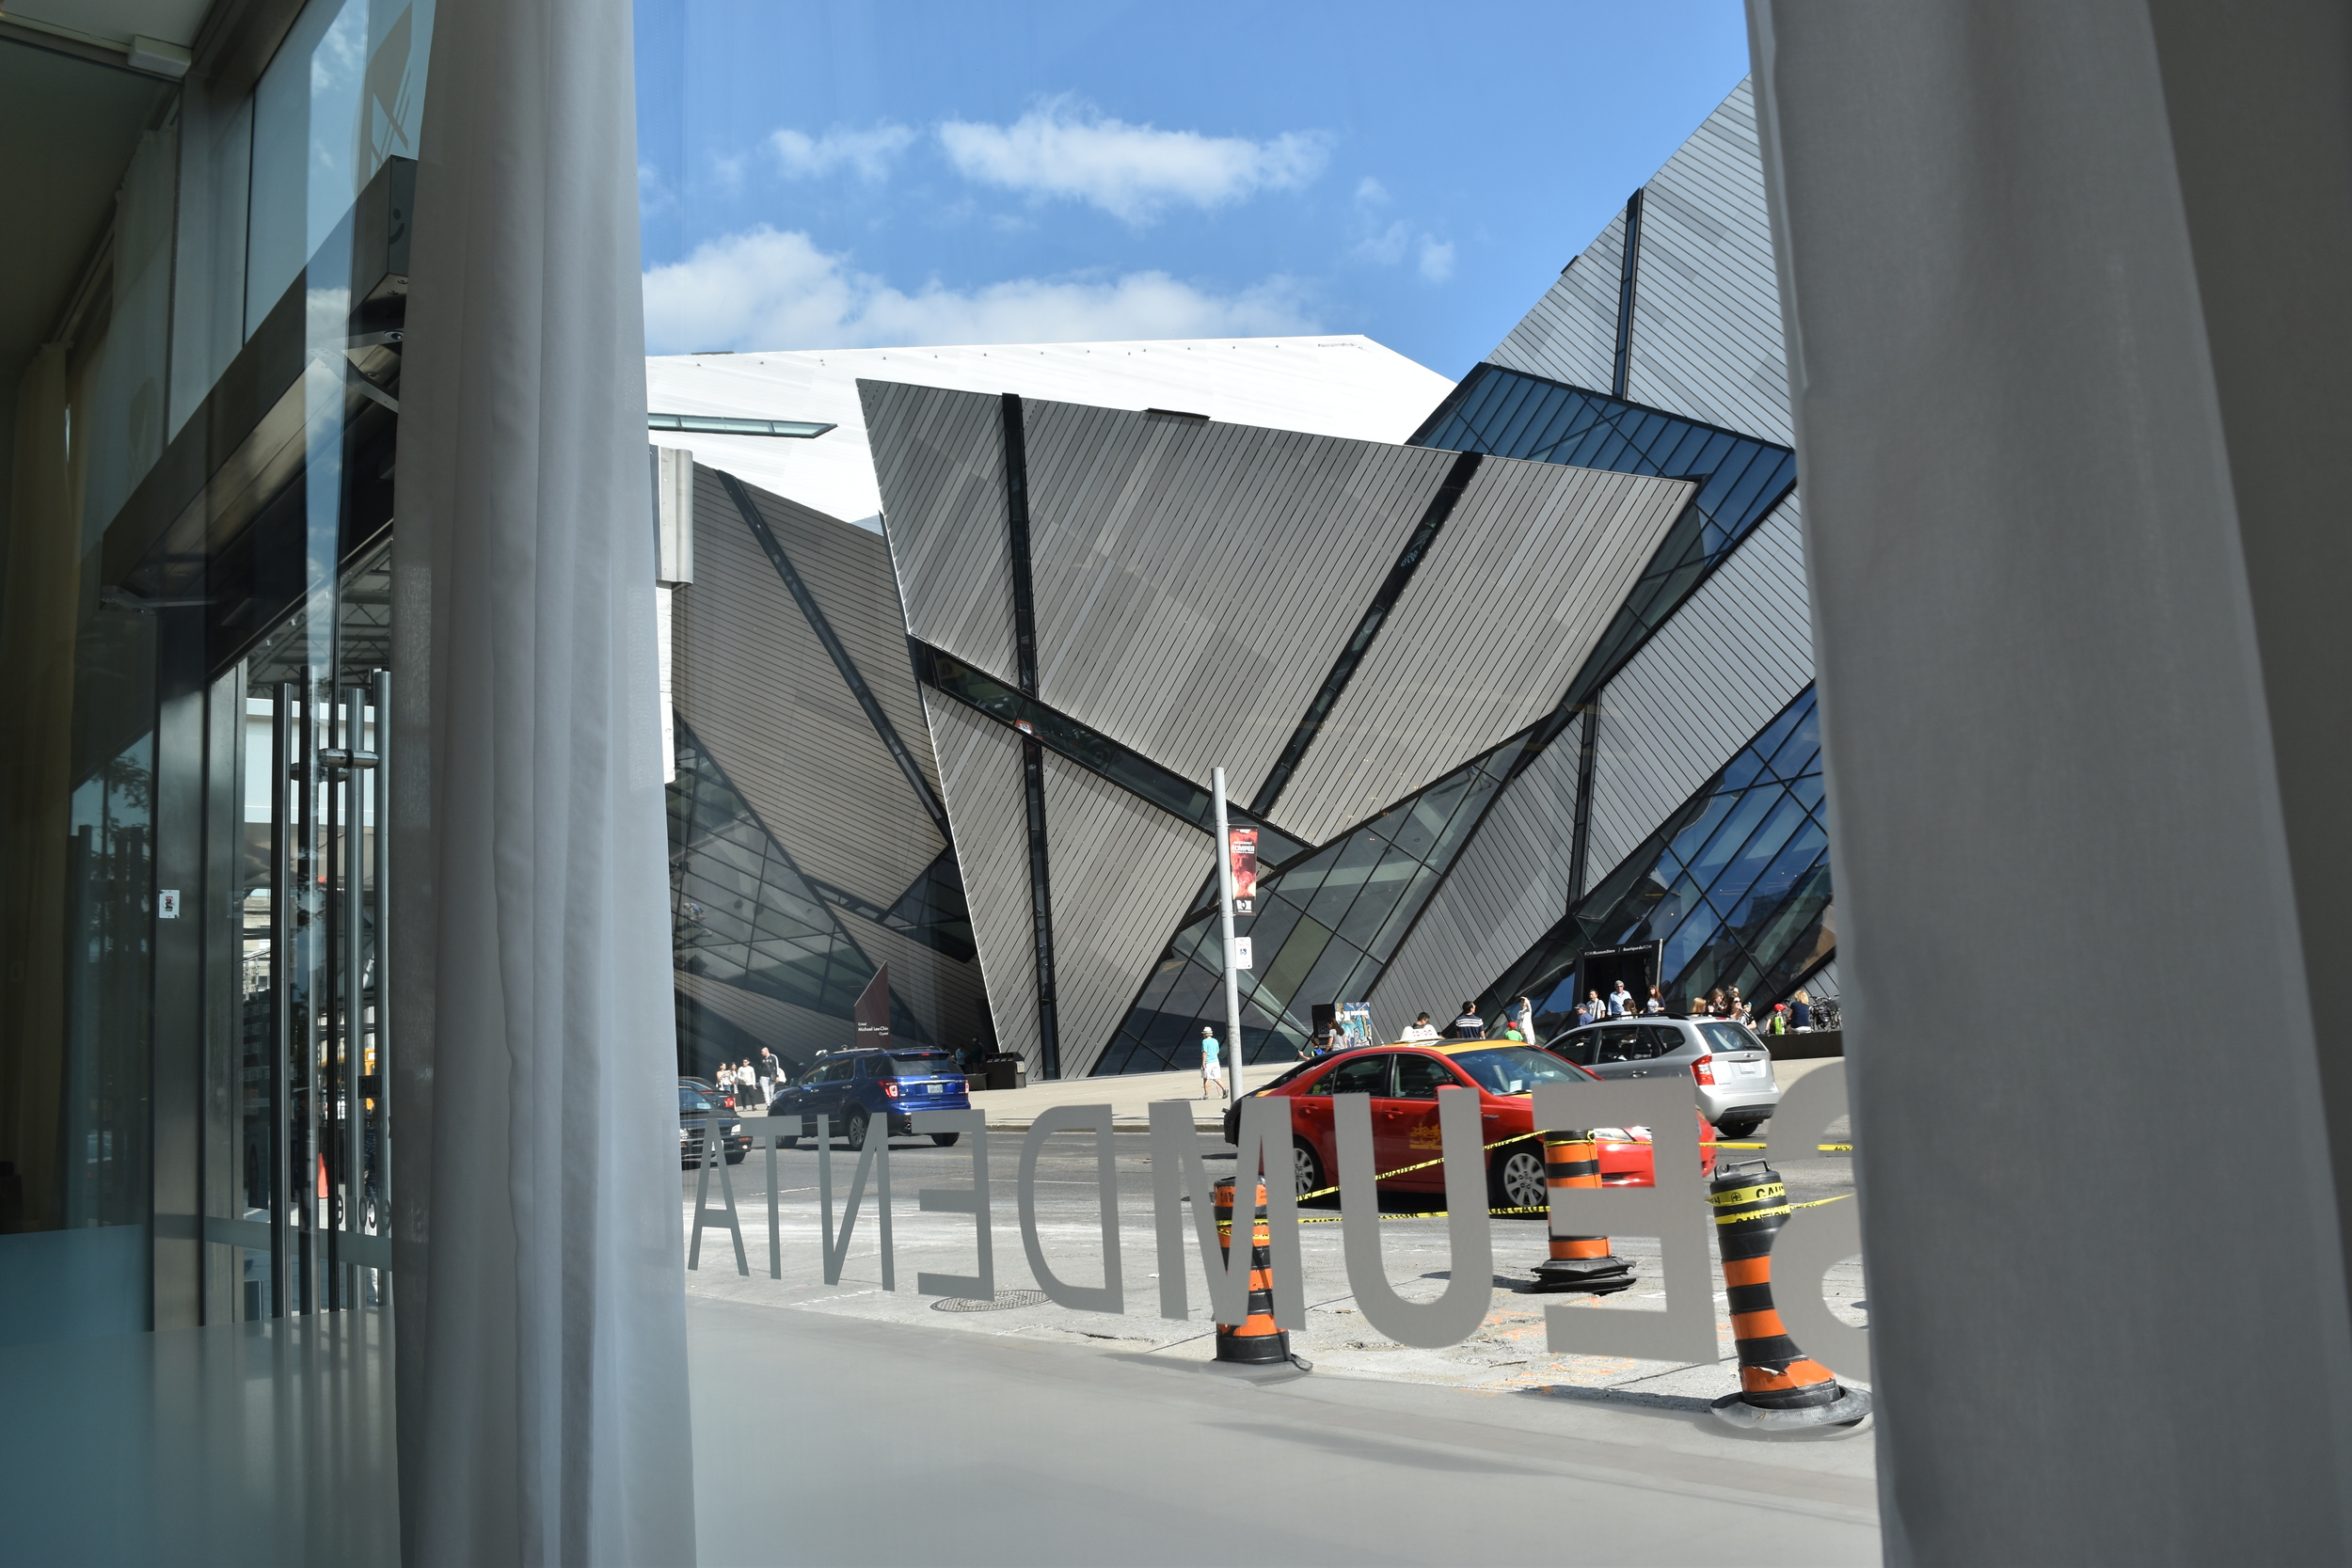 Beautiful views of the Royal Ontario Museum from our office